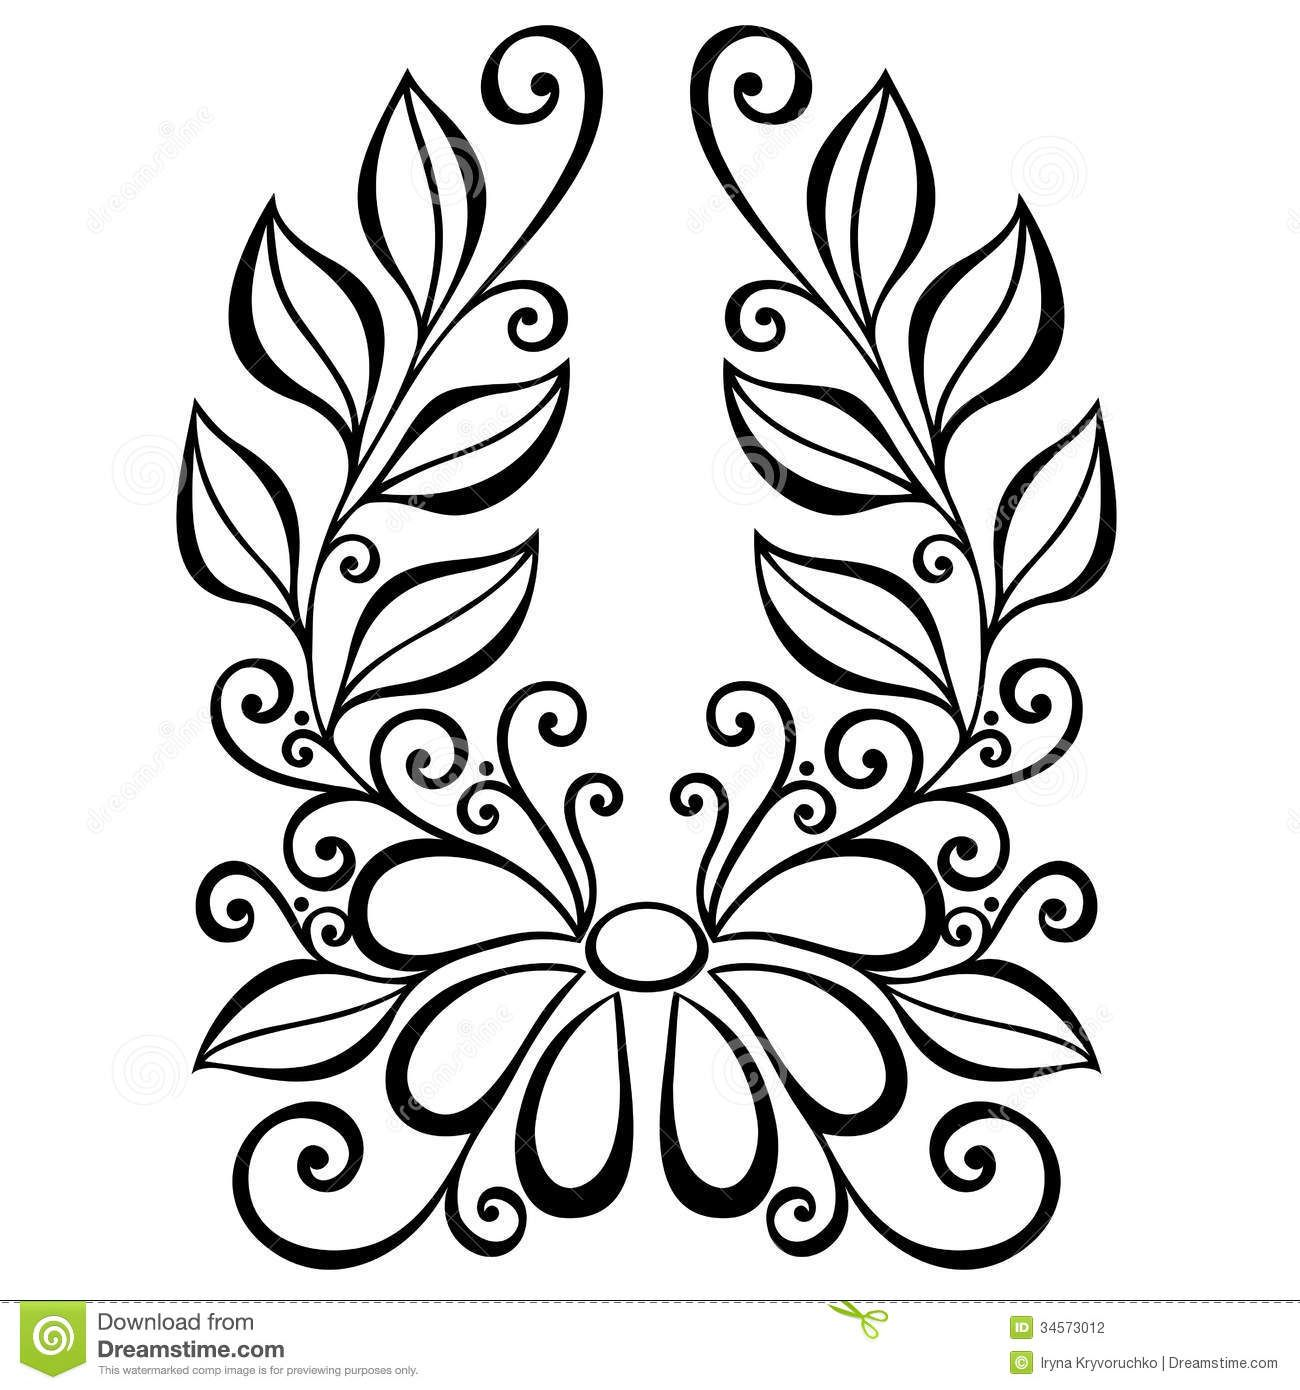 Decorative Flower Leaves Beautiful Vector Patterned Design 34573012